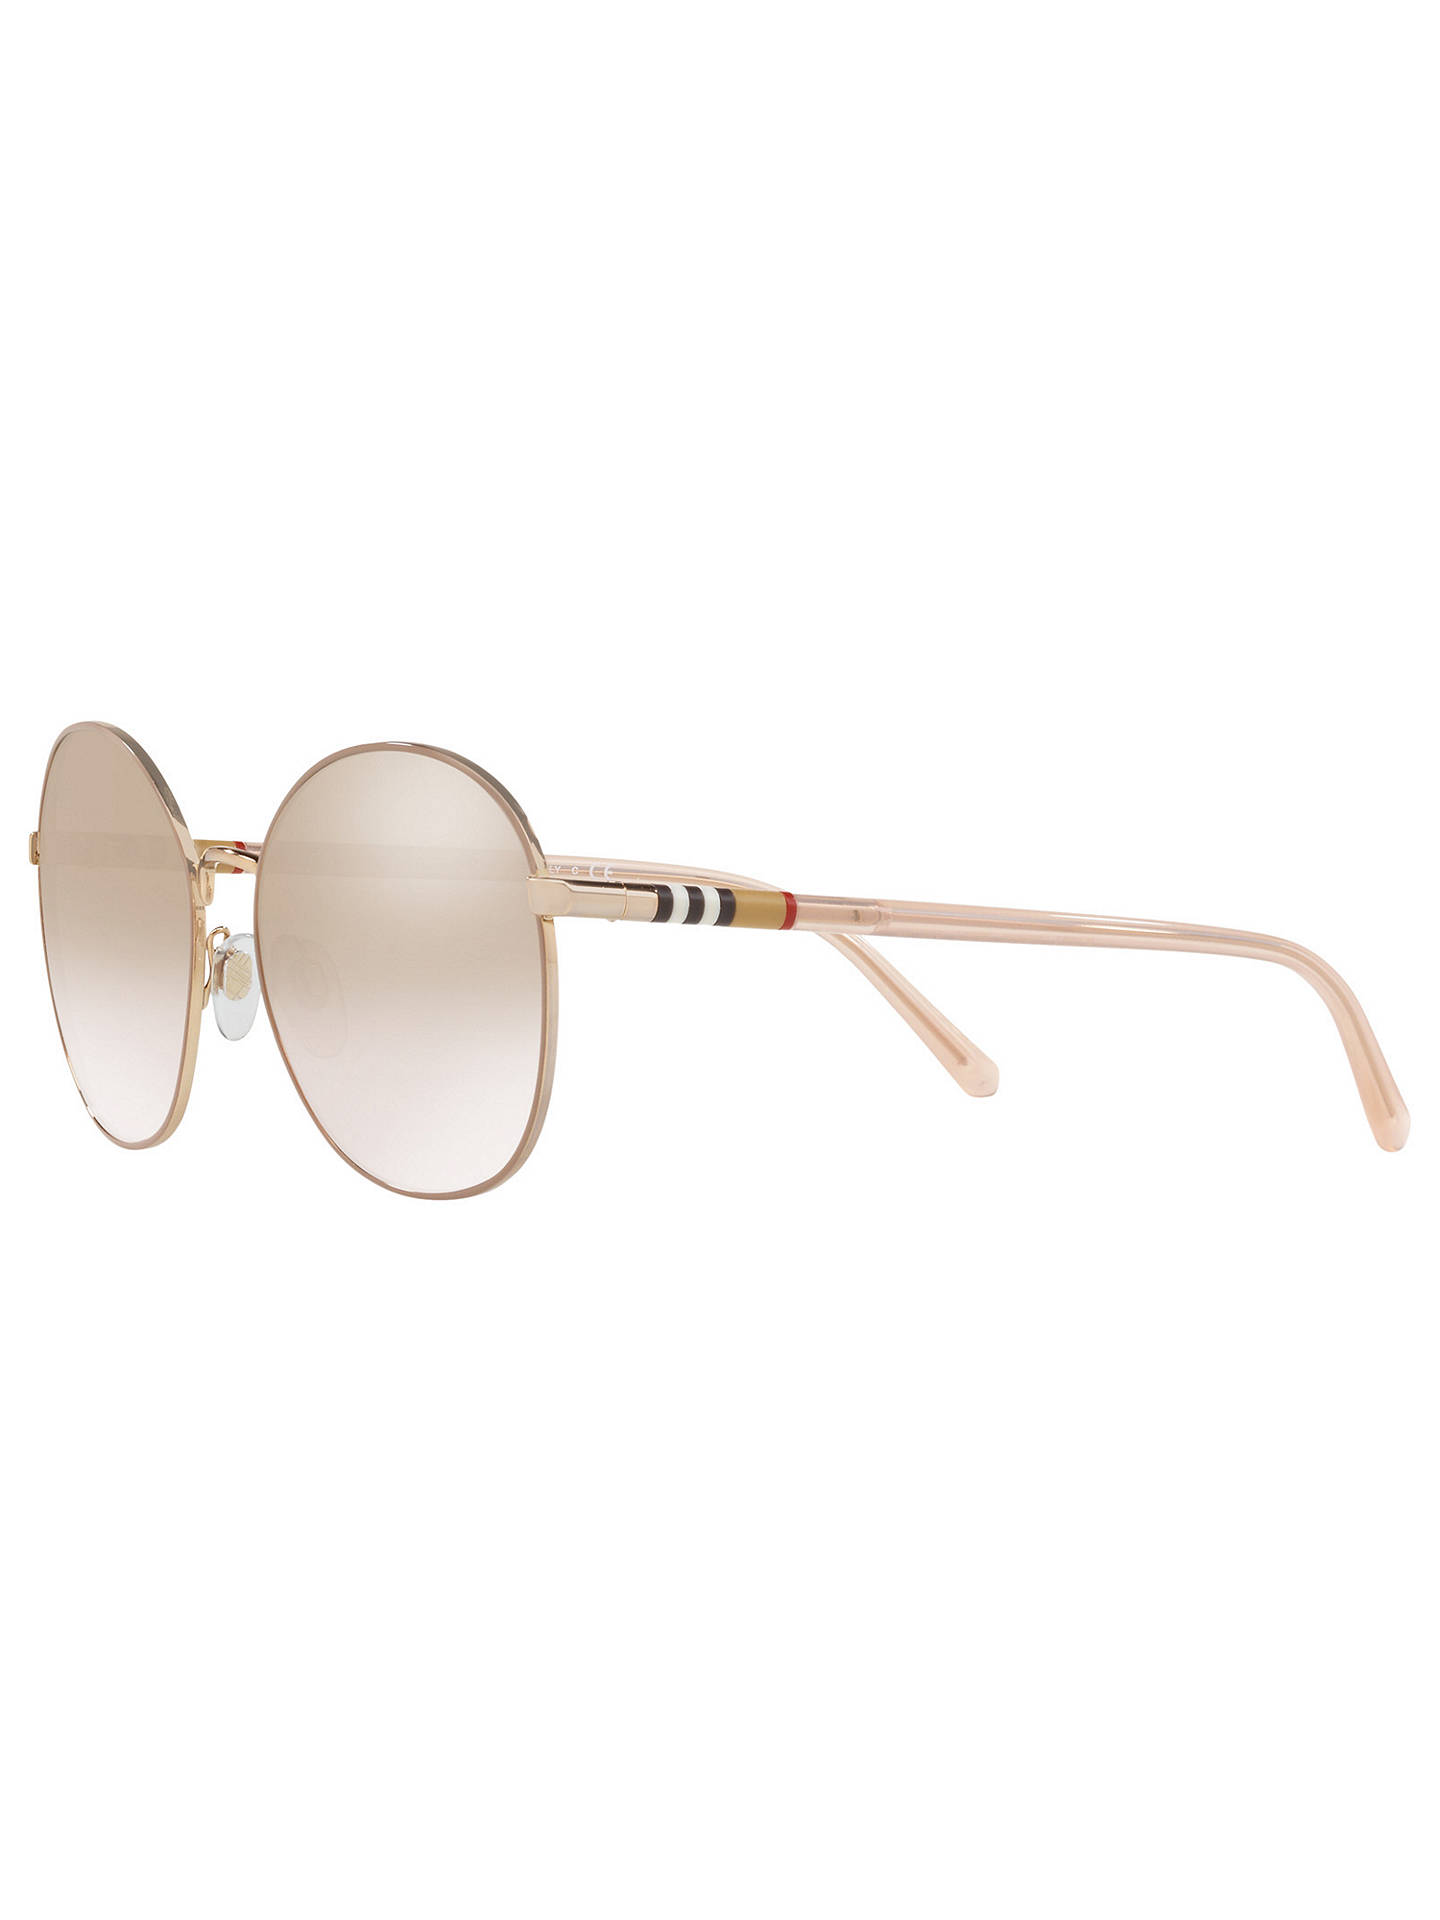 BuyBurberry BE3094 Women's Round Sunglasses, Light Brown Online at johnlewis.com